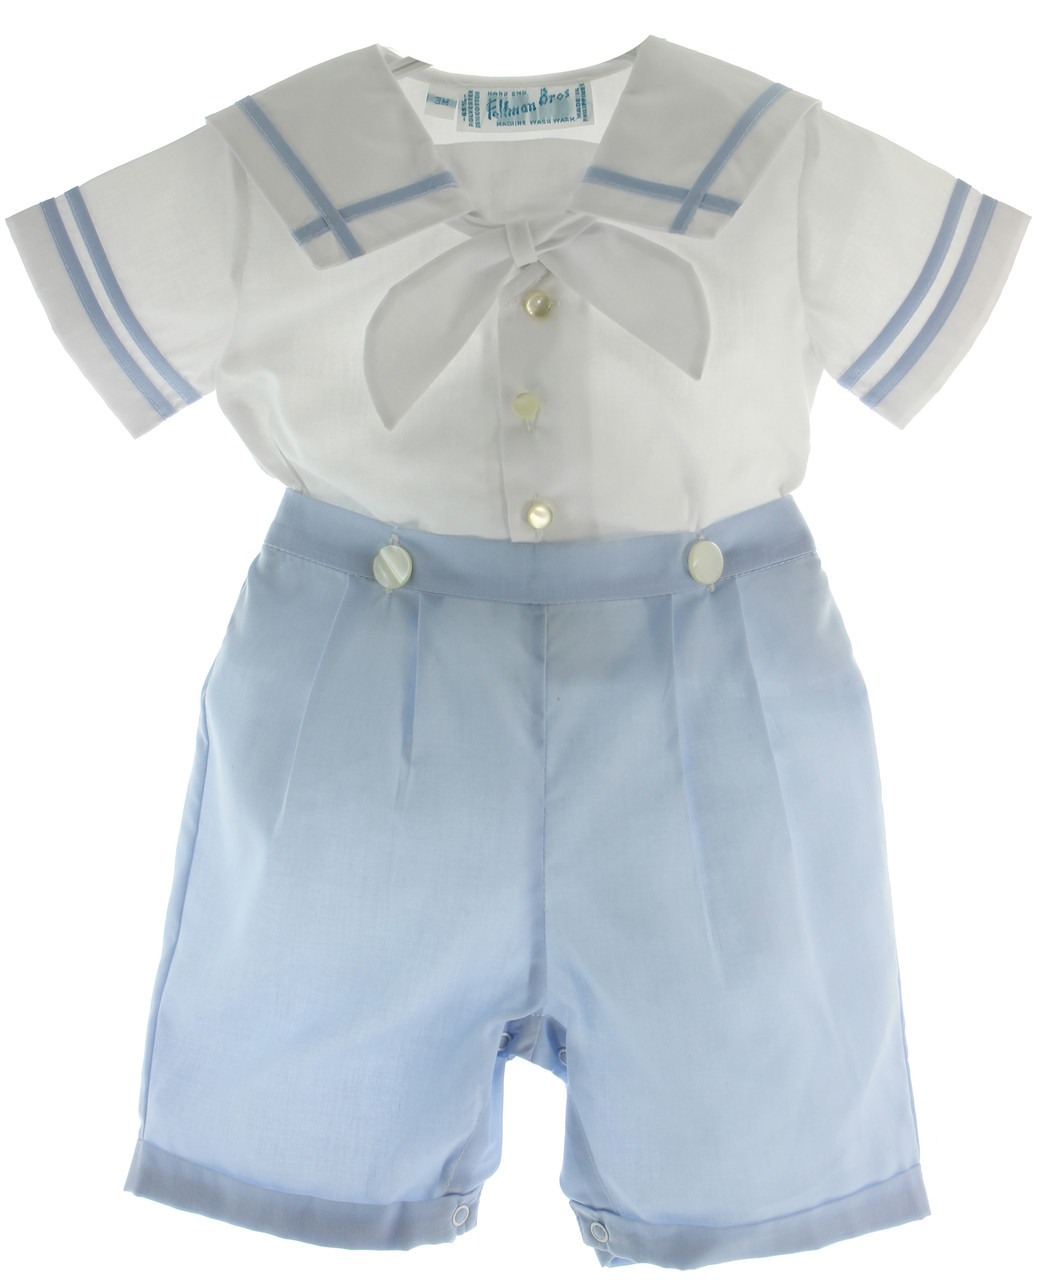 Boys Blue   White Sailor Bobby Suit Dedication Outfit Feltman Brothers fa1c457ff6bb